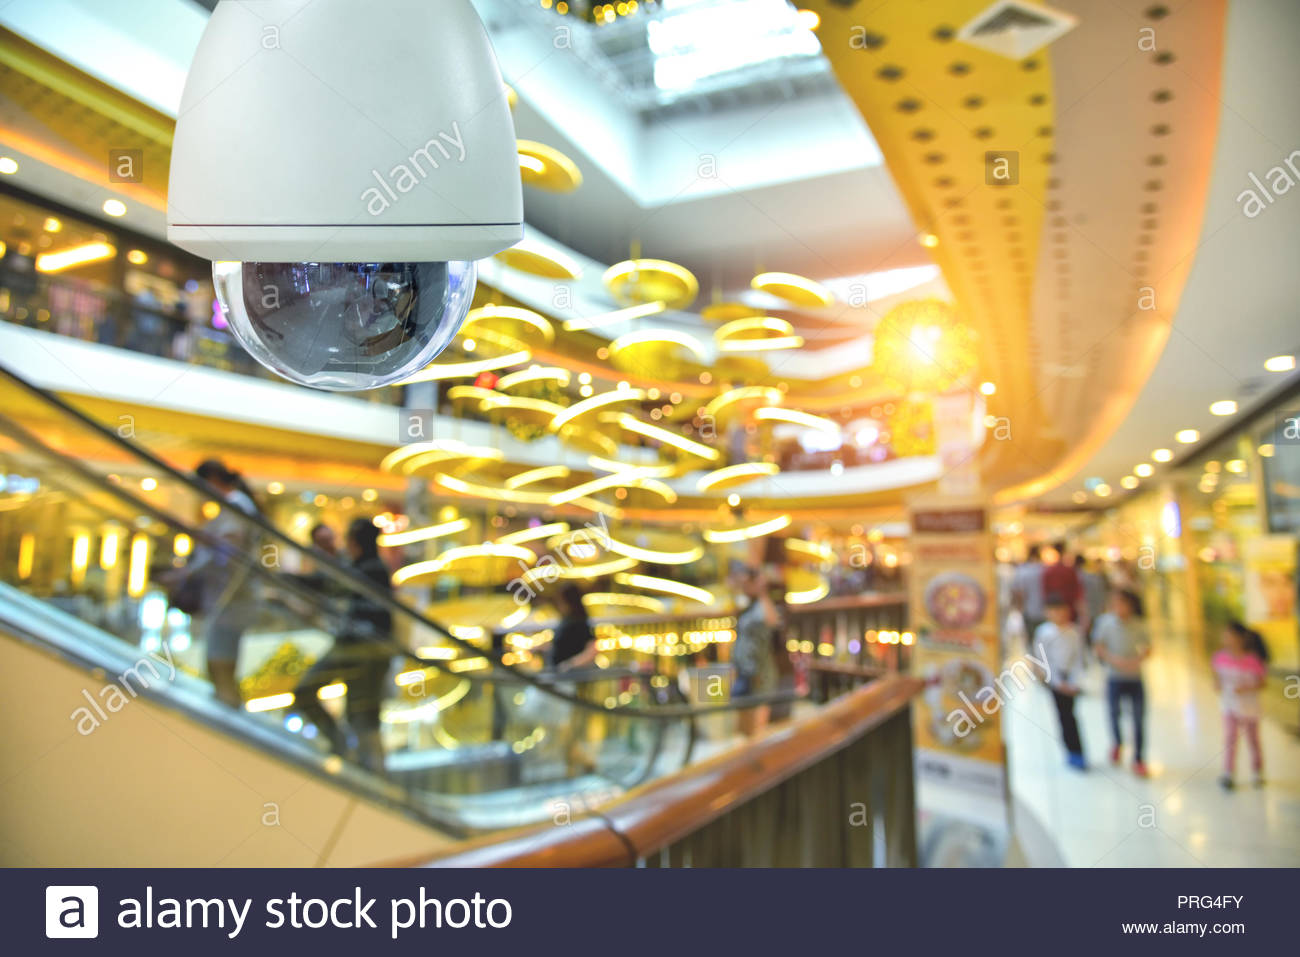 Dome camera and abstract blur background shopping mall interior - Stock Image